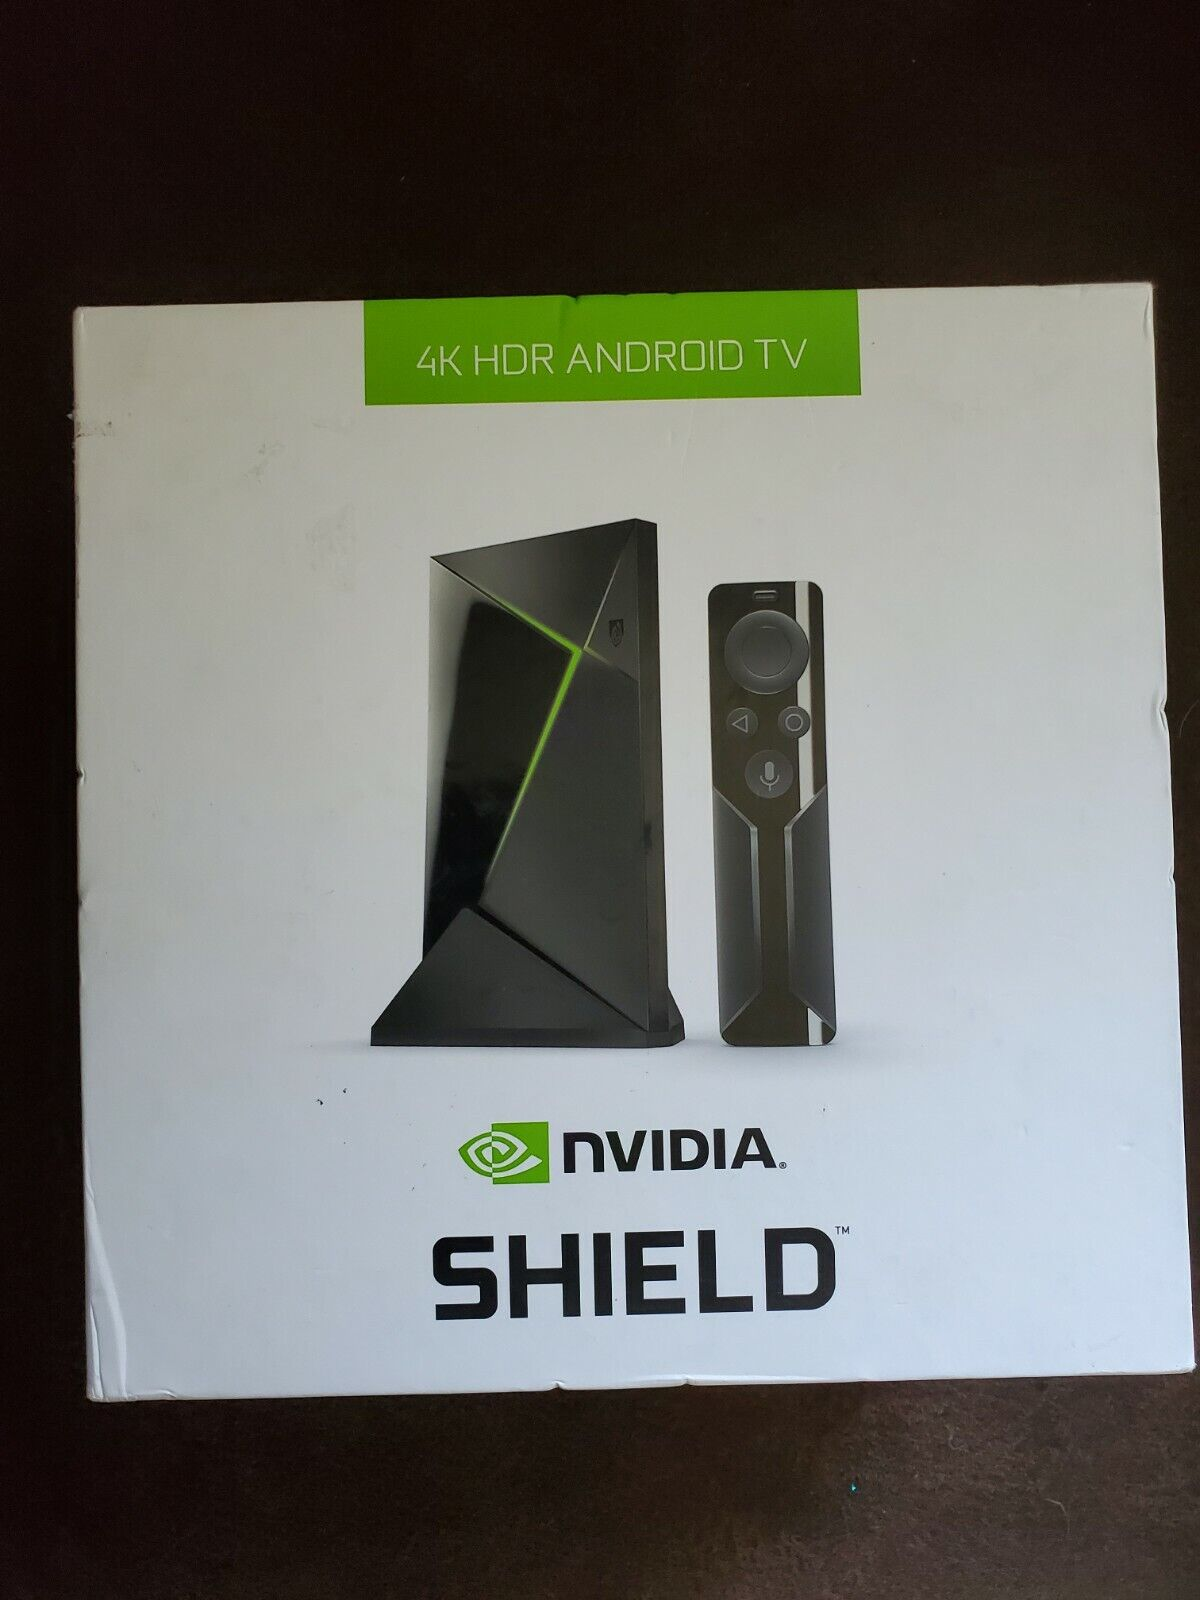 NVIDIA - SHIELD Android TV Pro - 16GB - 4K HDR Streaming Media Player✅NEW✅SEALED 16gb android hdr media nvidia pro shield streaming